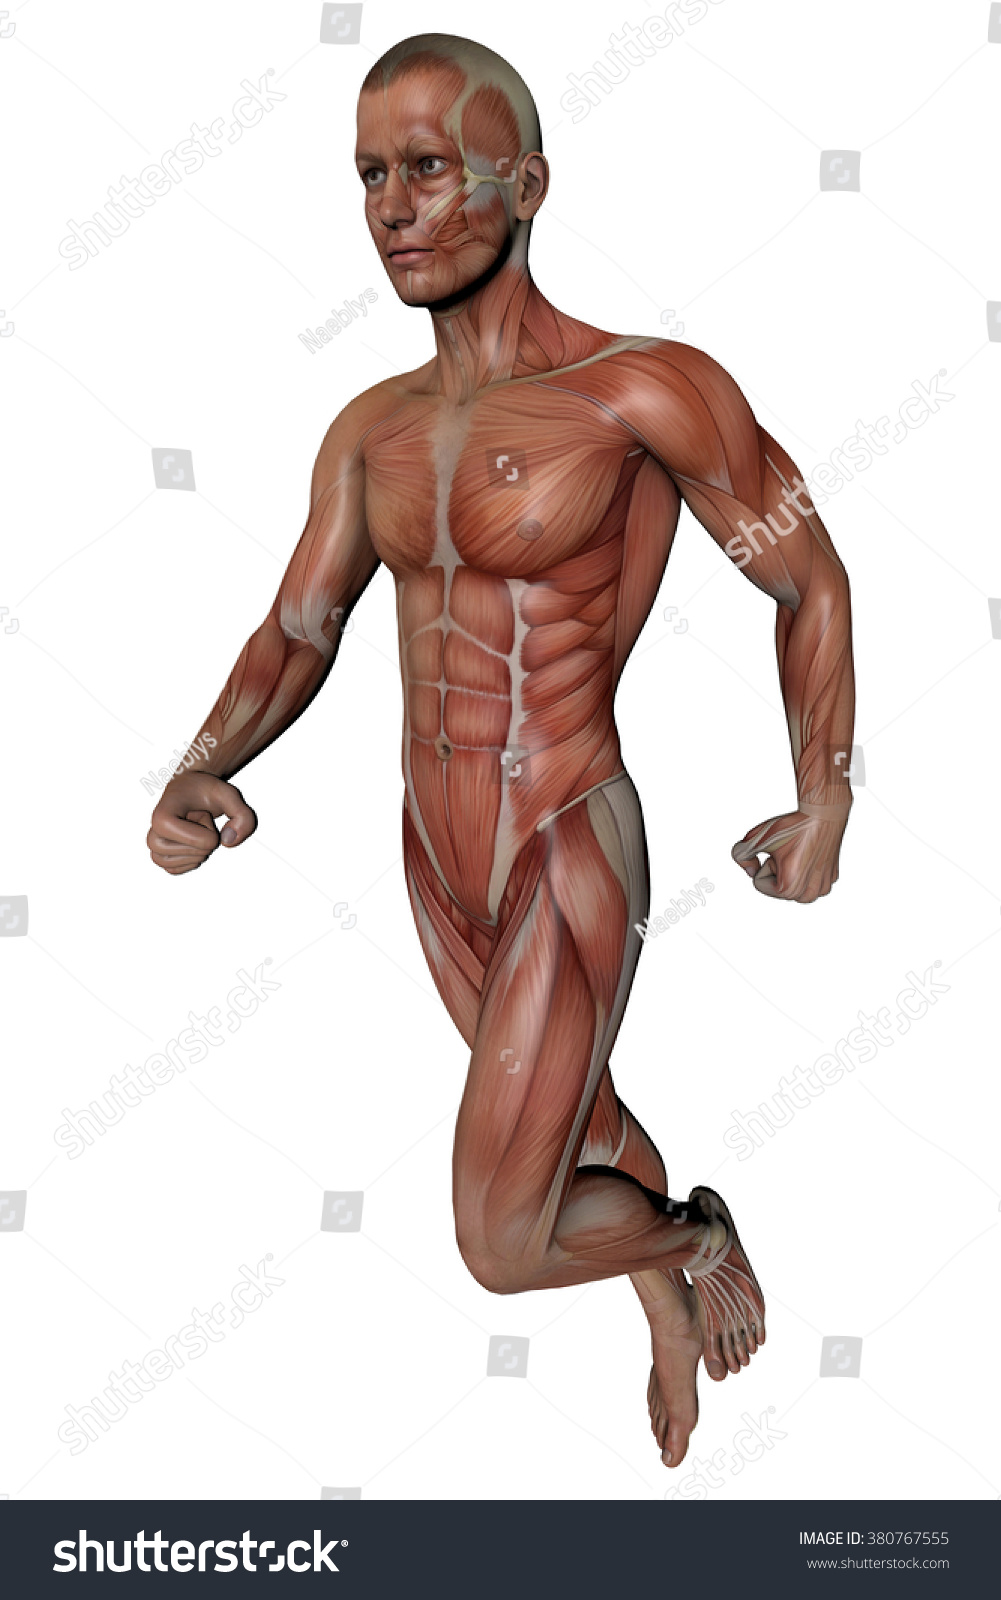 Fitness Man Body Anatomy Muscles Skeleton Stock Illustration ...